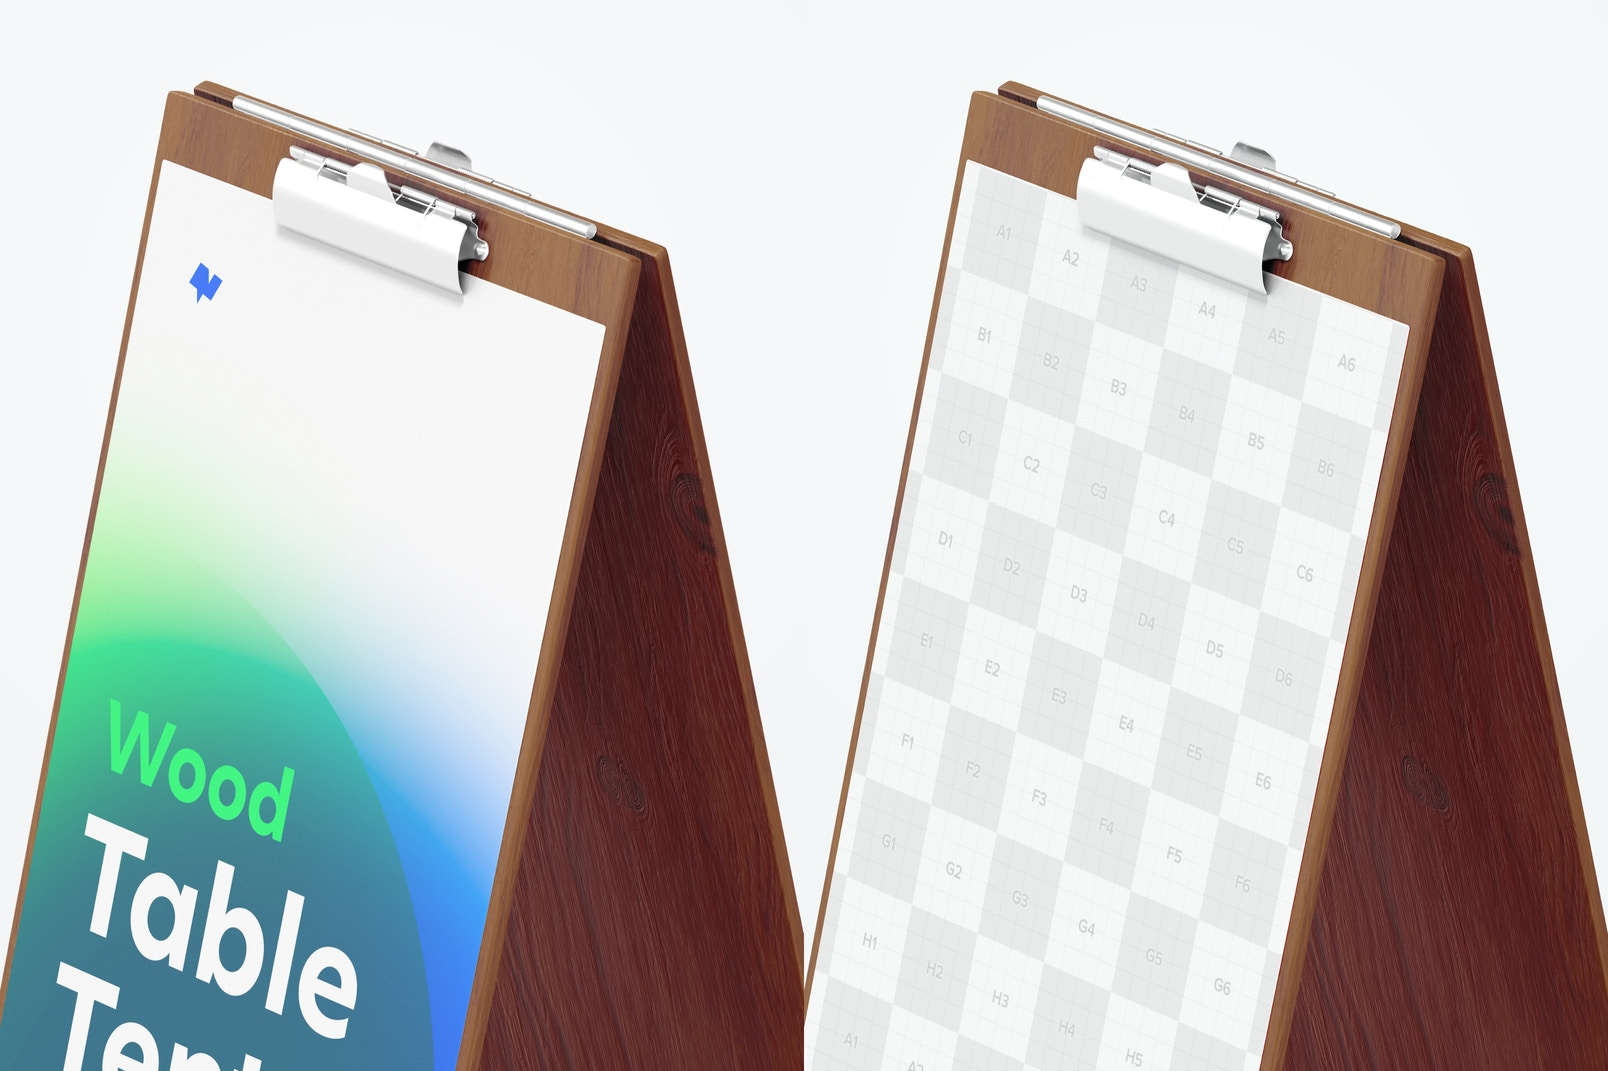 Wood Table Tent with Clip Mockup, Close-Up